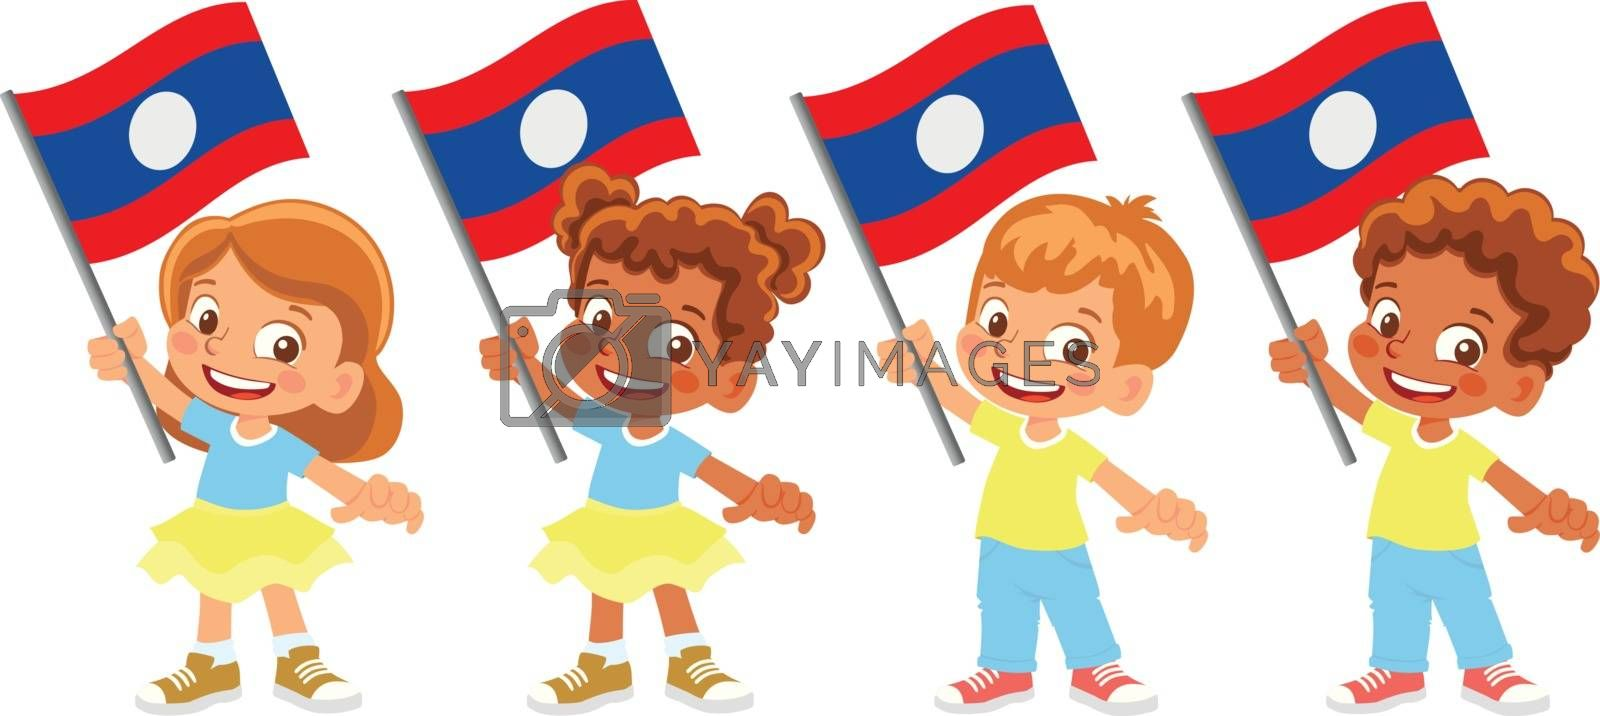 Laos flag in hand set by Visual-Content